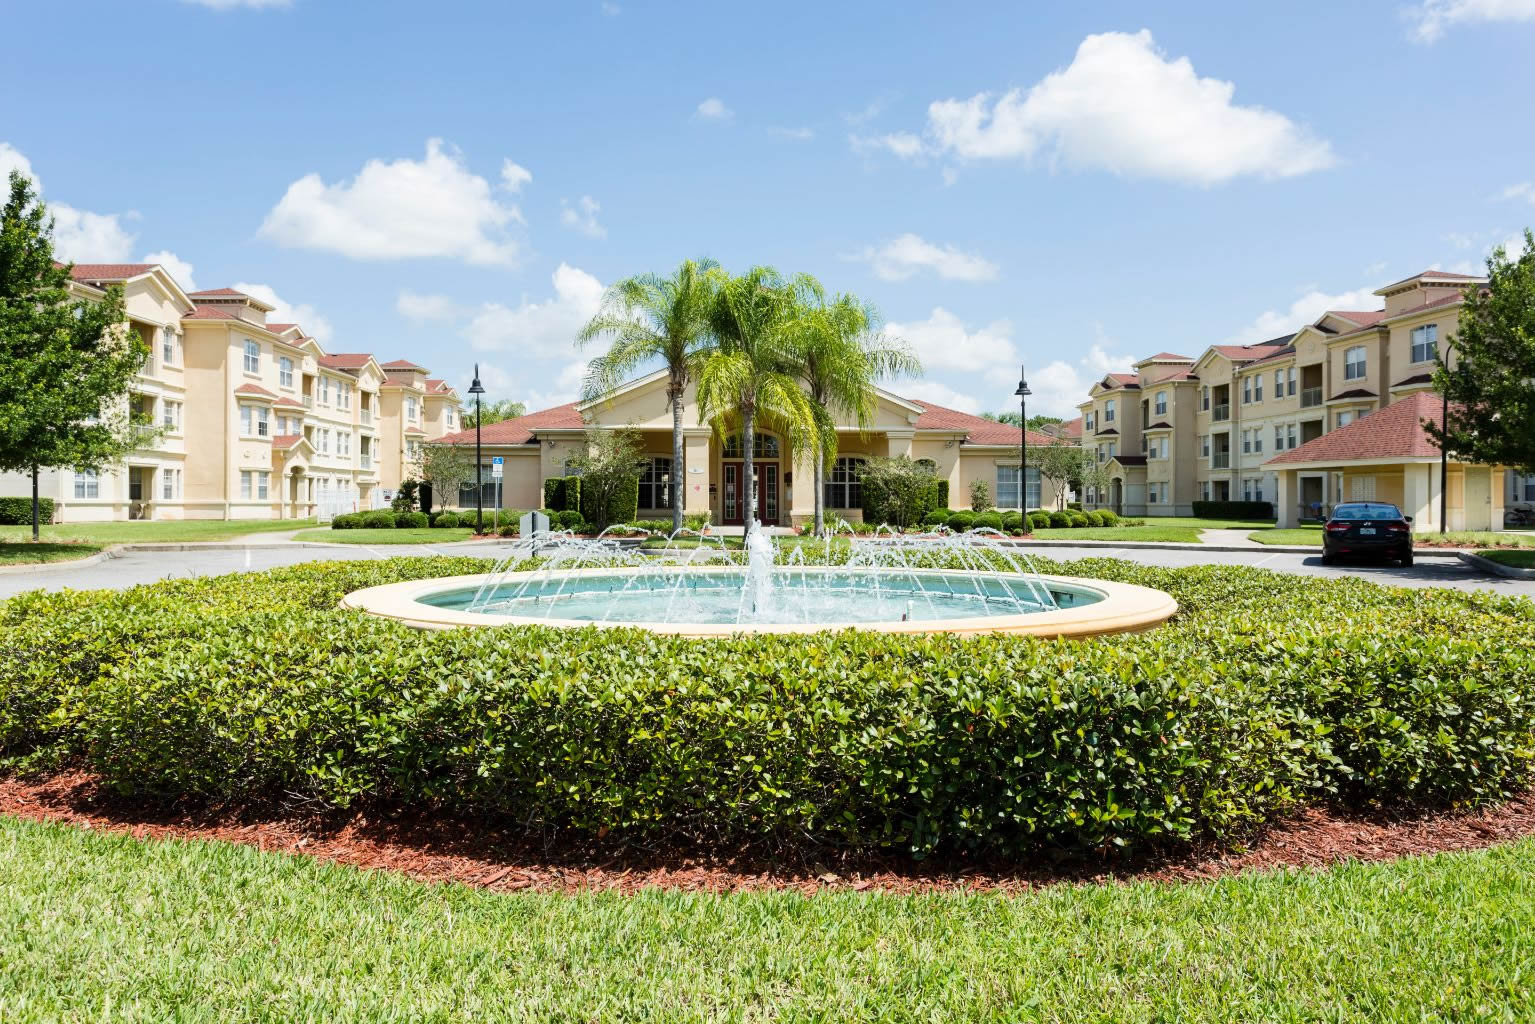 Orlando Vacation Homes - Orlando Vacation Rentals in FL